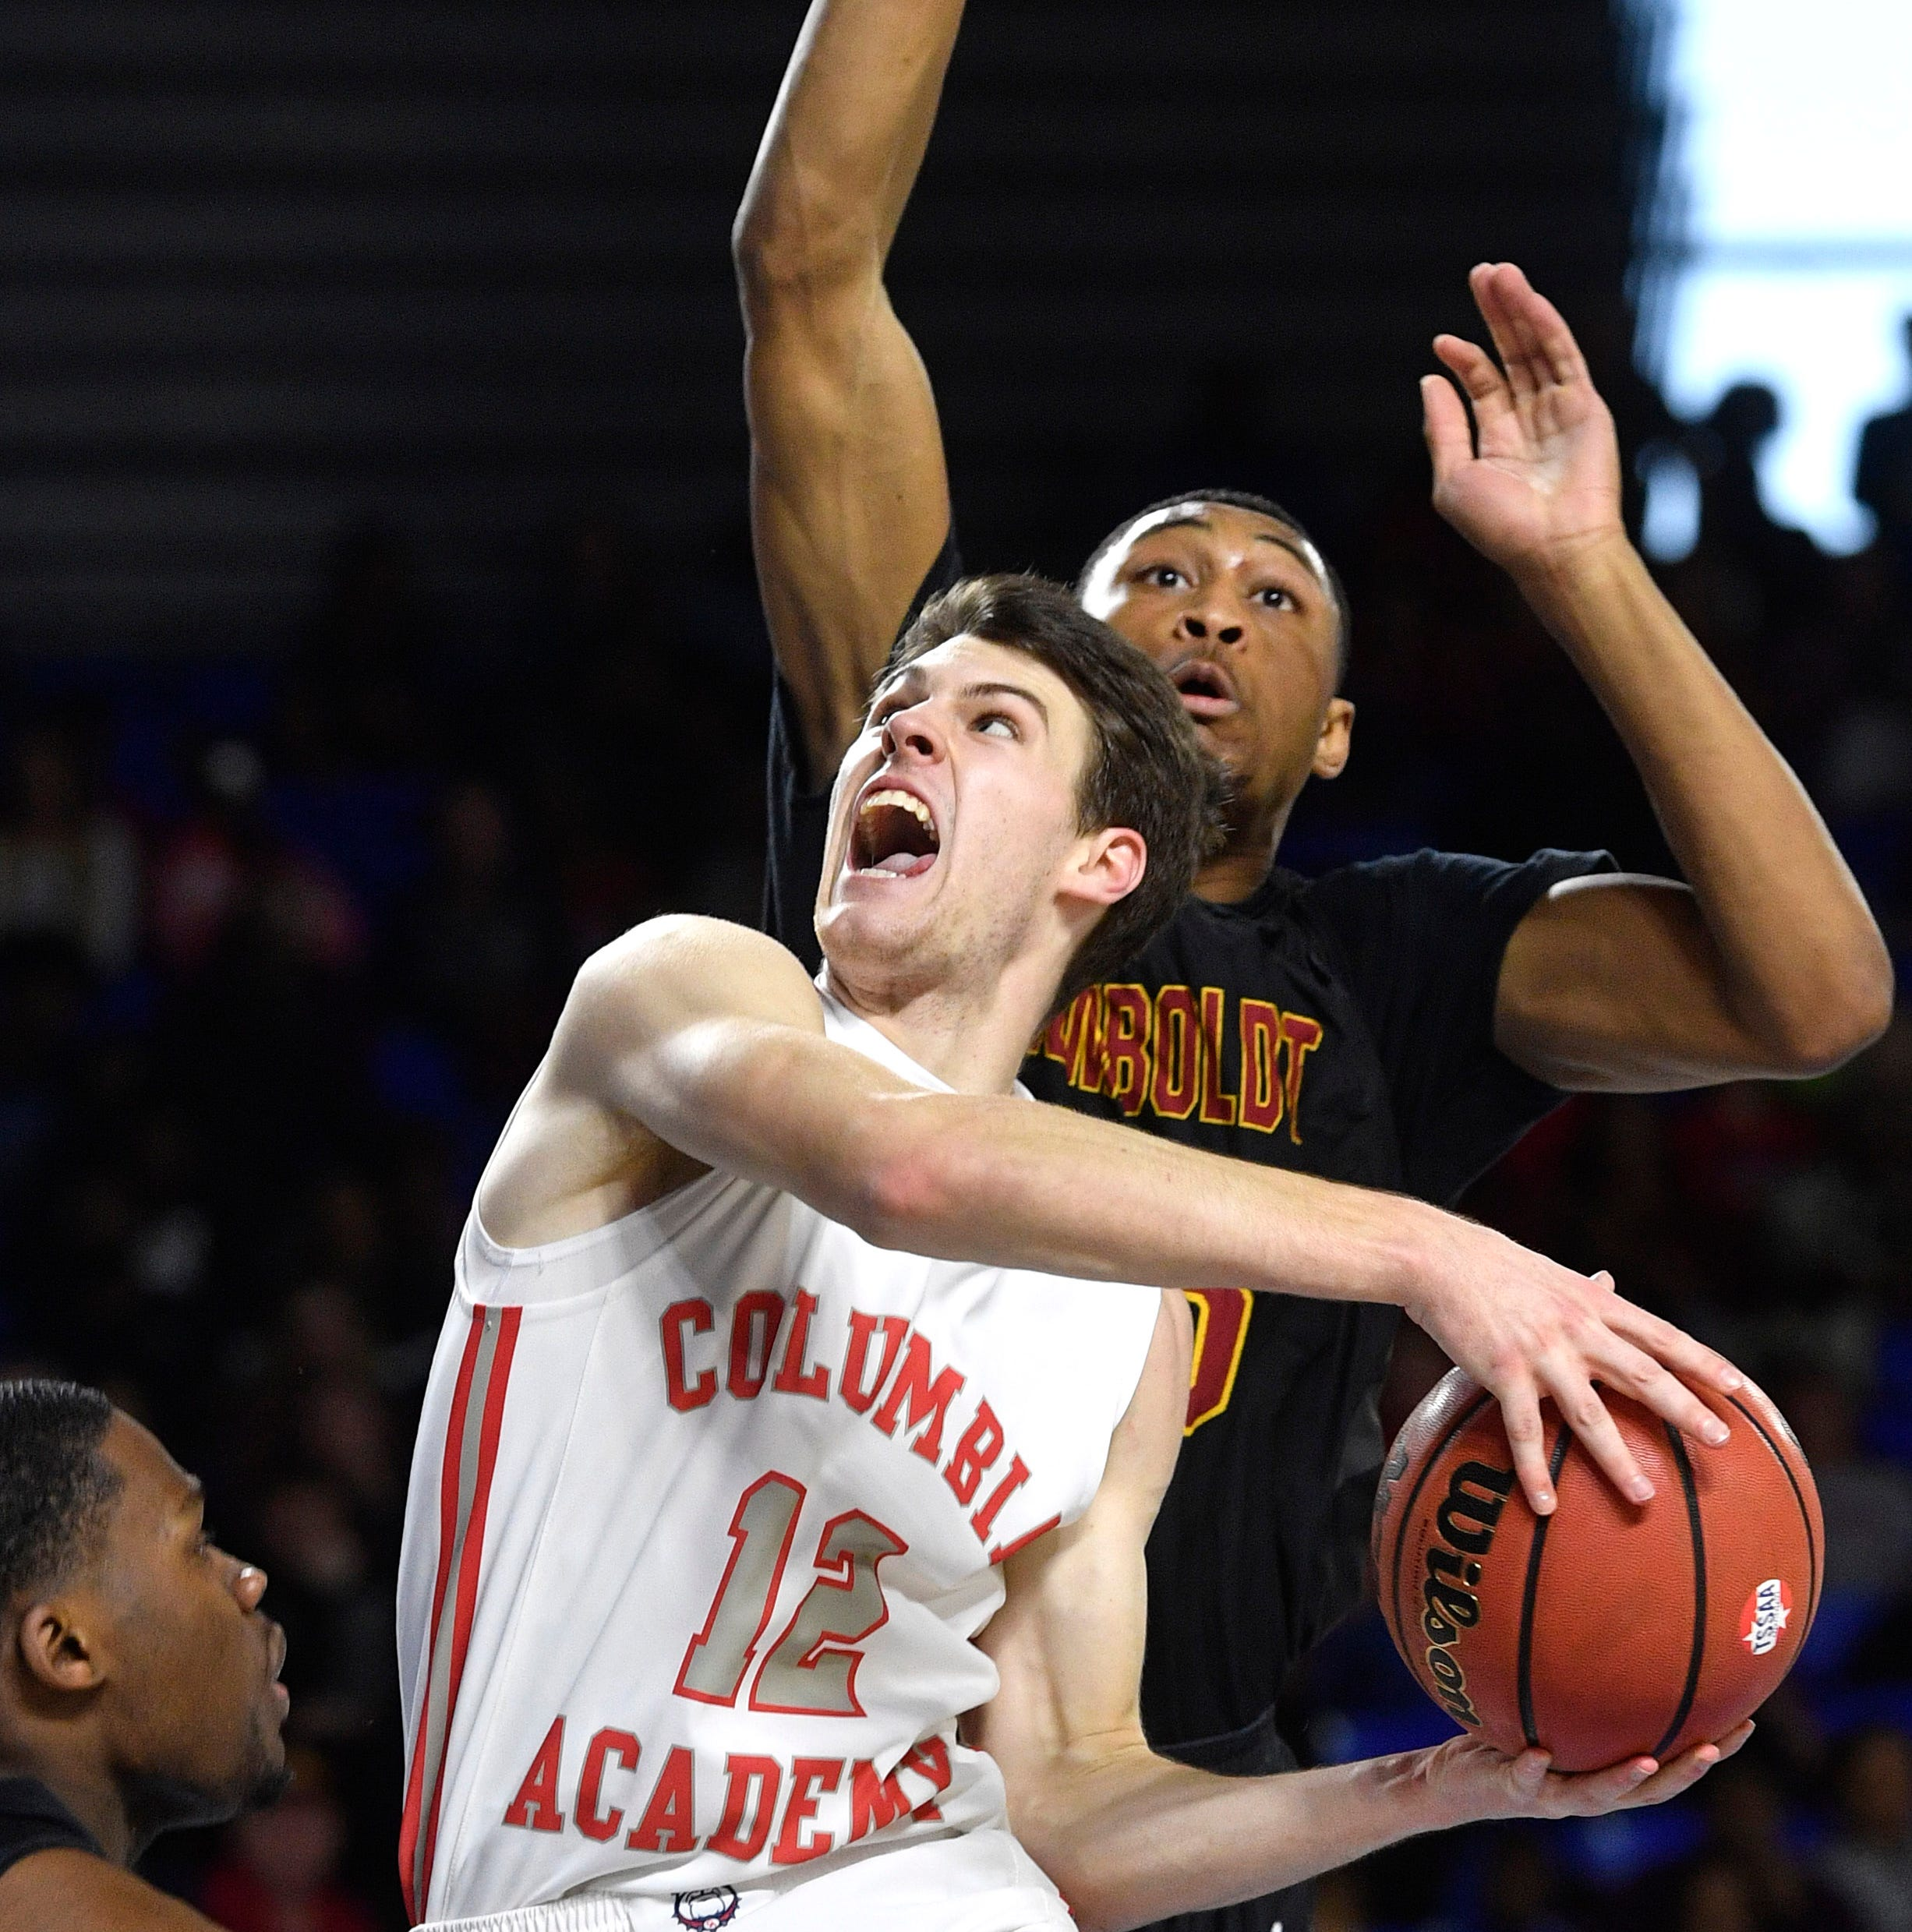 Eight seniors finish third straight state trip with Columbia Academy's first boys basketball title